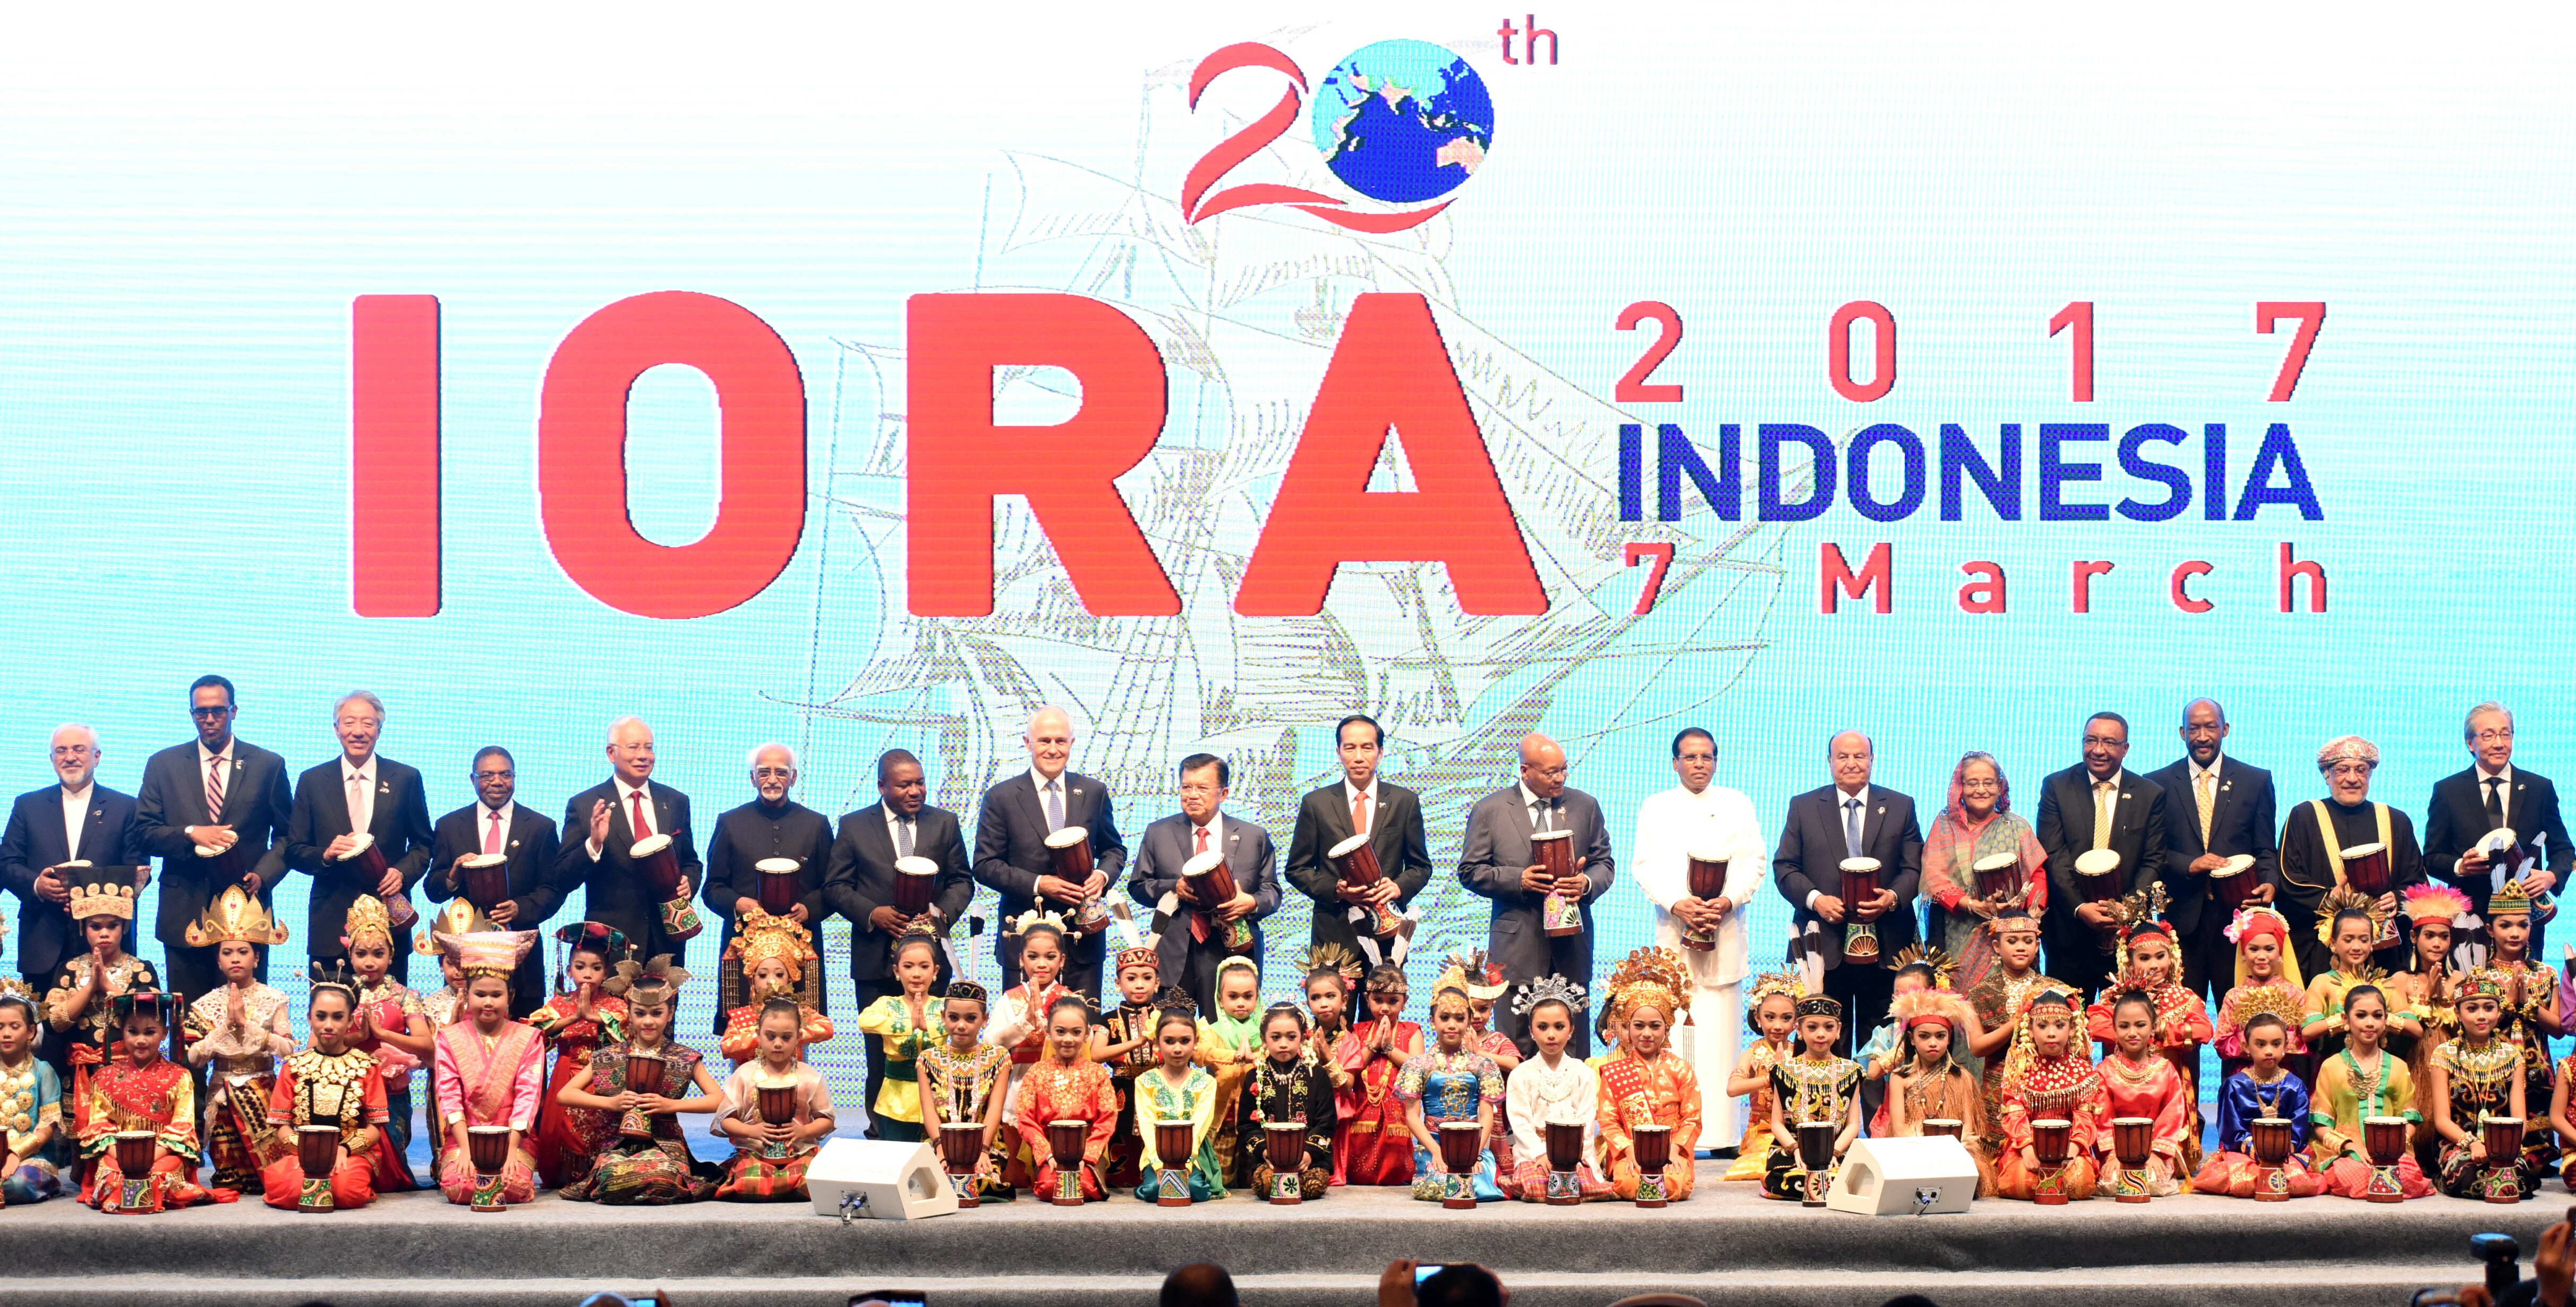 President Jokowi and Vice President Jusuf Kalla hold tifa, to be beated to open the IORA Summit, at the Jakarta Convention Center, Tuesday (7/3) morning (Photo: Rahmat/PR)